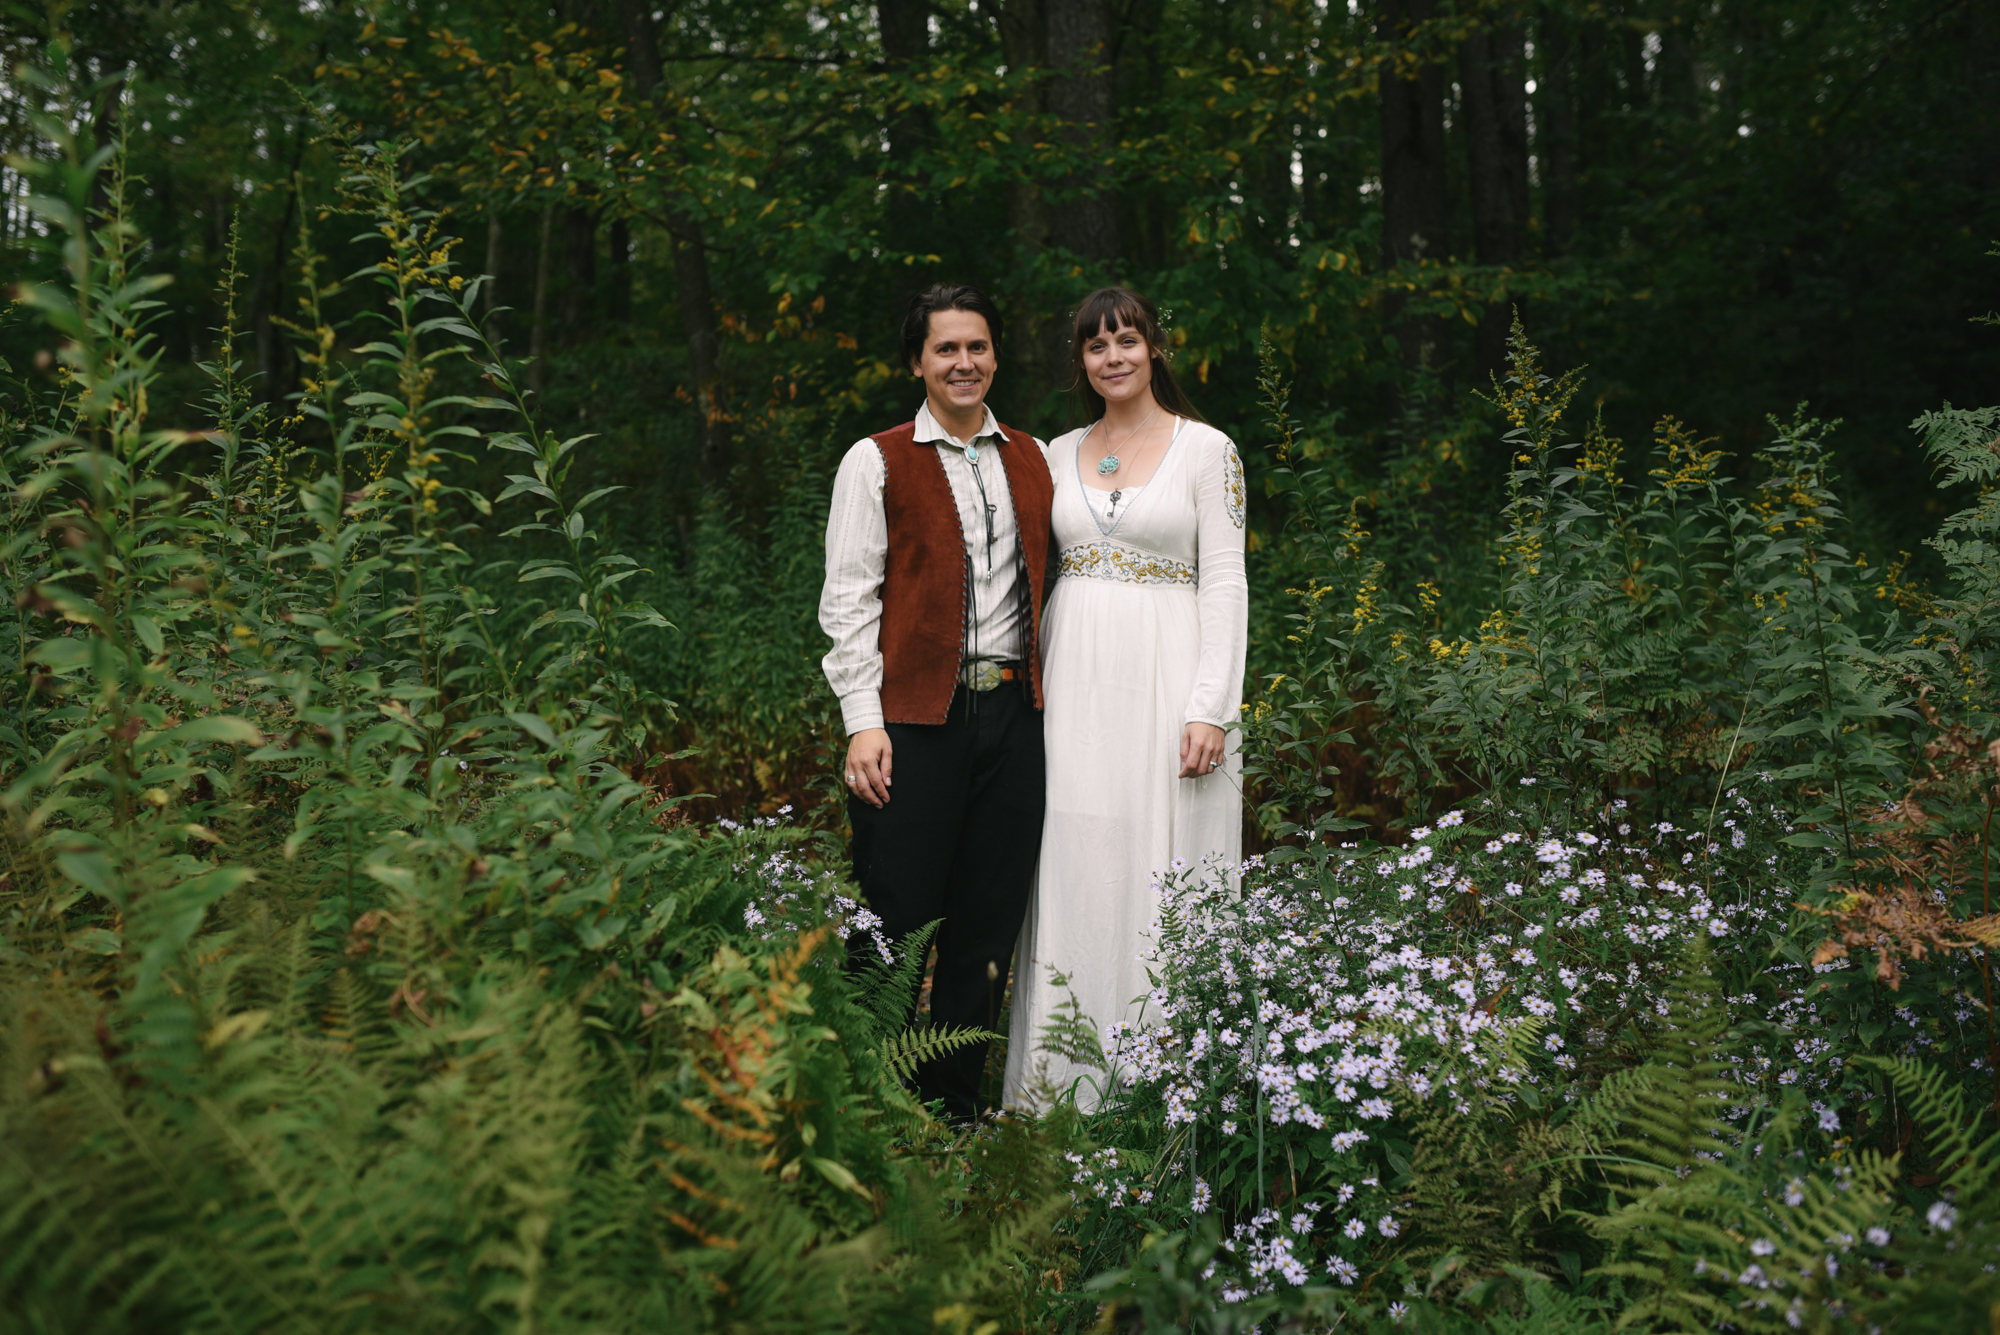 Mountain Wedding, Outdoors, Rustic, West Virginia, Maryland Wedding Photographer, DIY, Casual, portrait of bride and groom in the woods